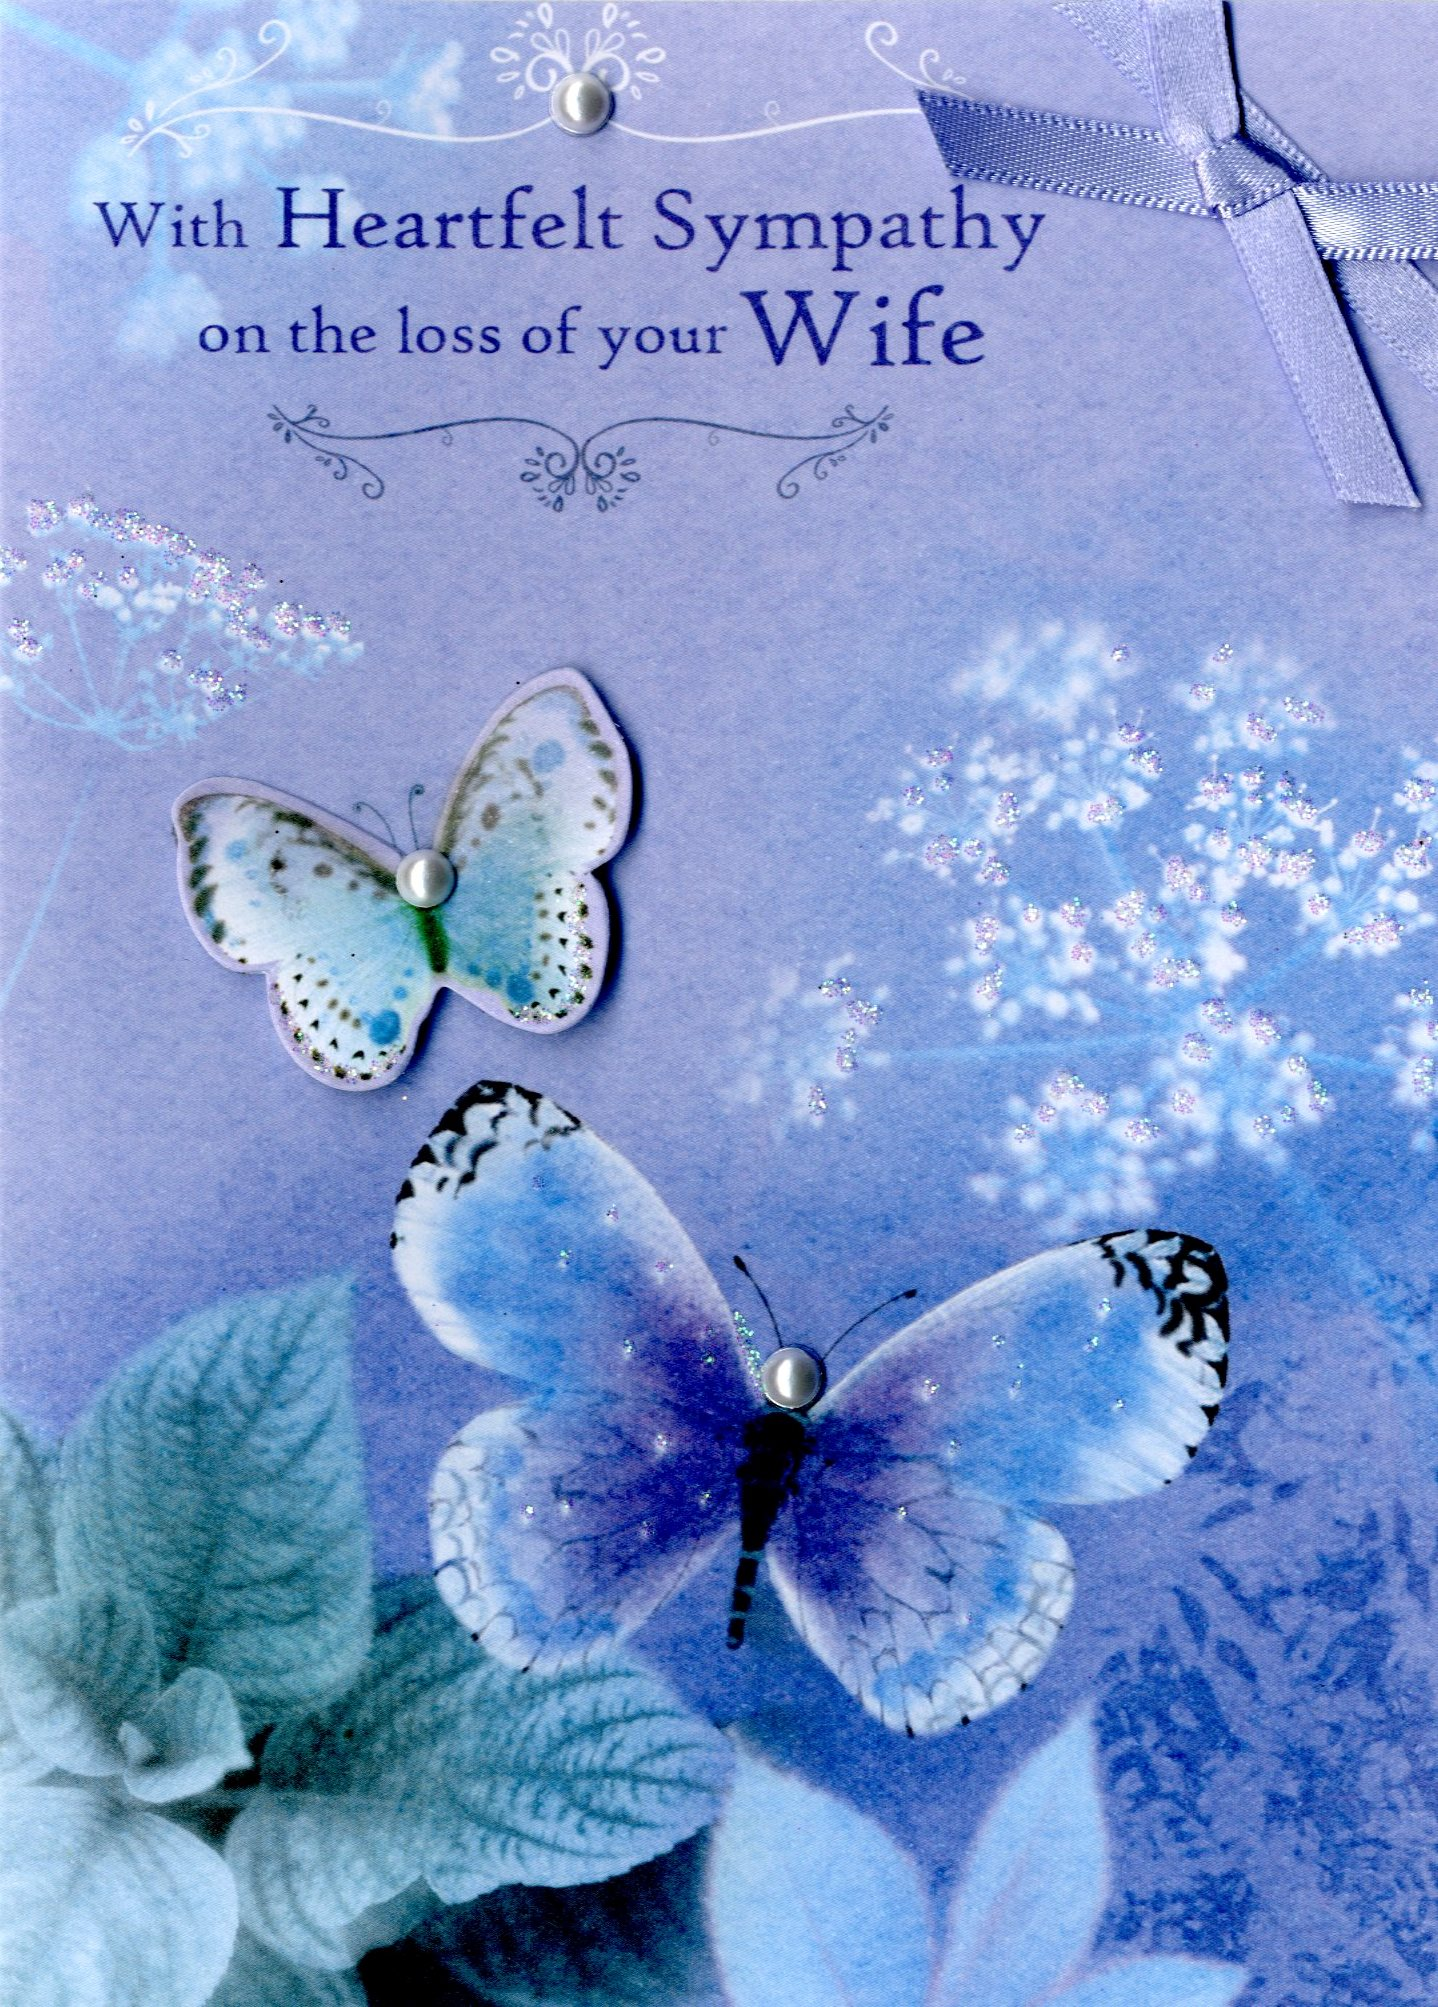 Loss Of Your Wife Heartfelt Sympathy Greeting Card Cards Love Kates